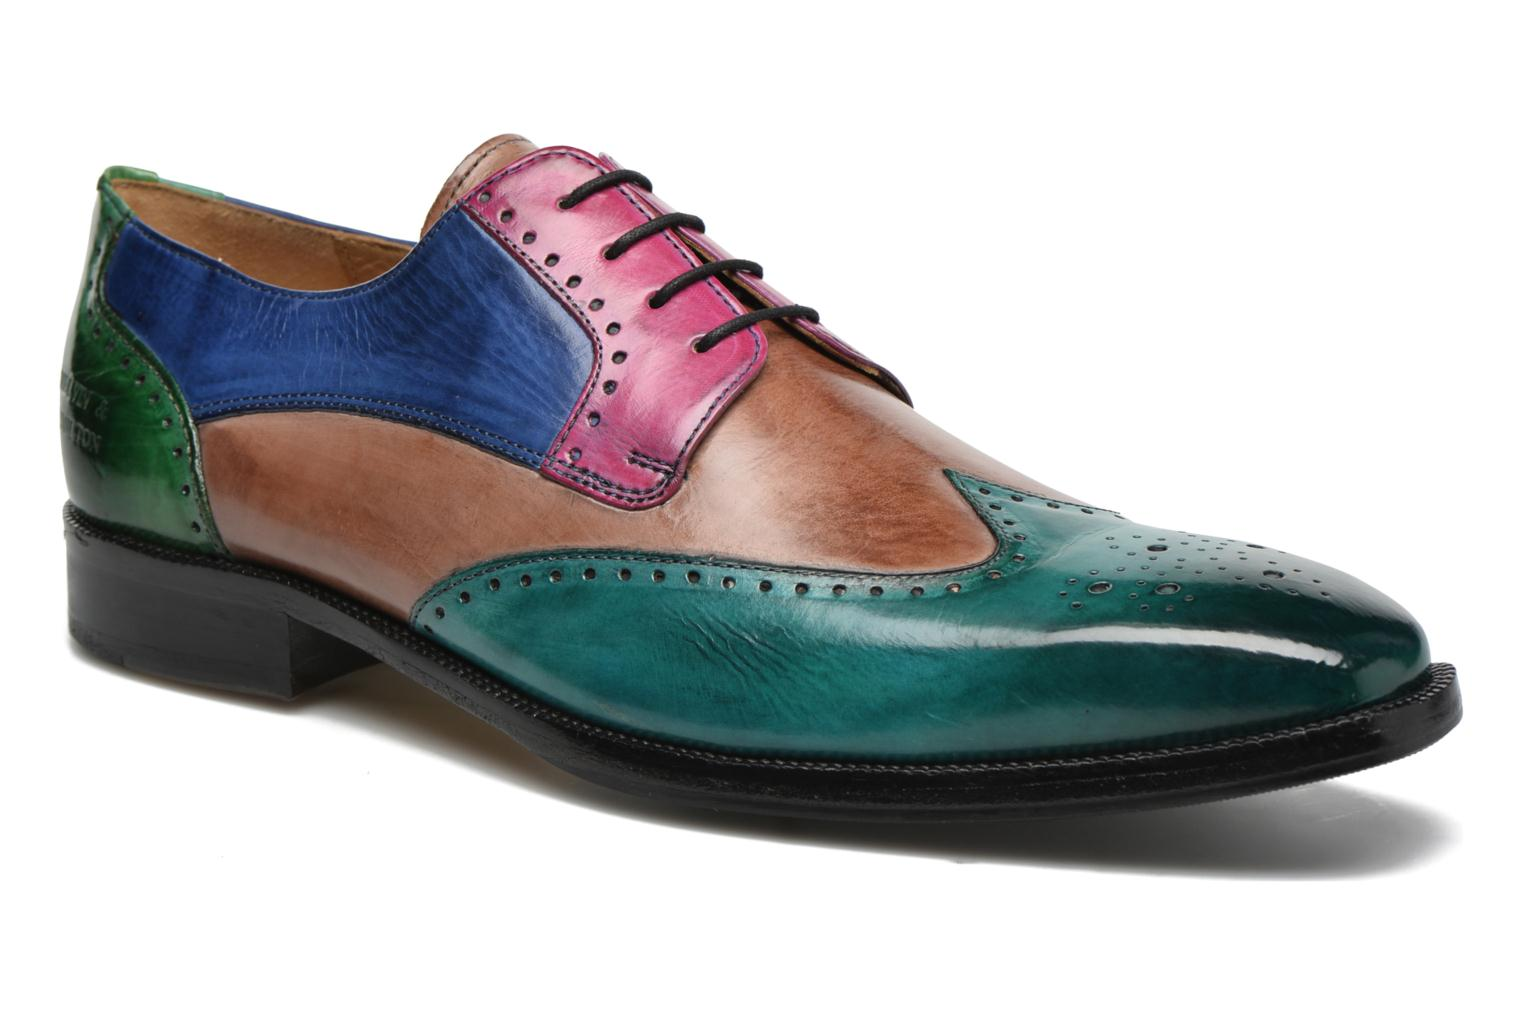 Jeff 14 Crust Turquoise Cappu fuxia E Blue E green HRS